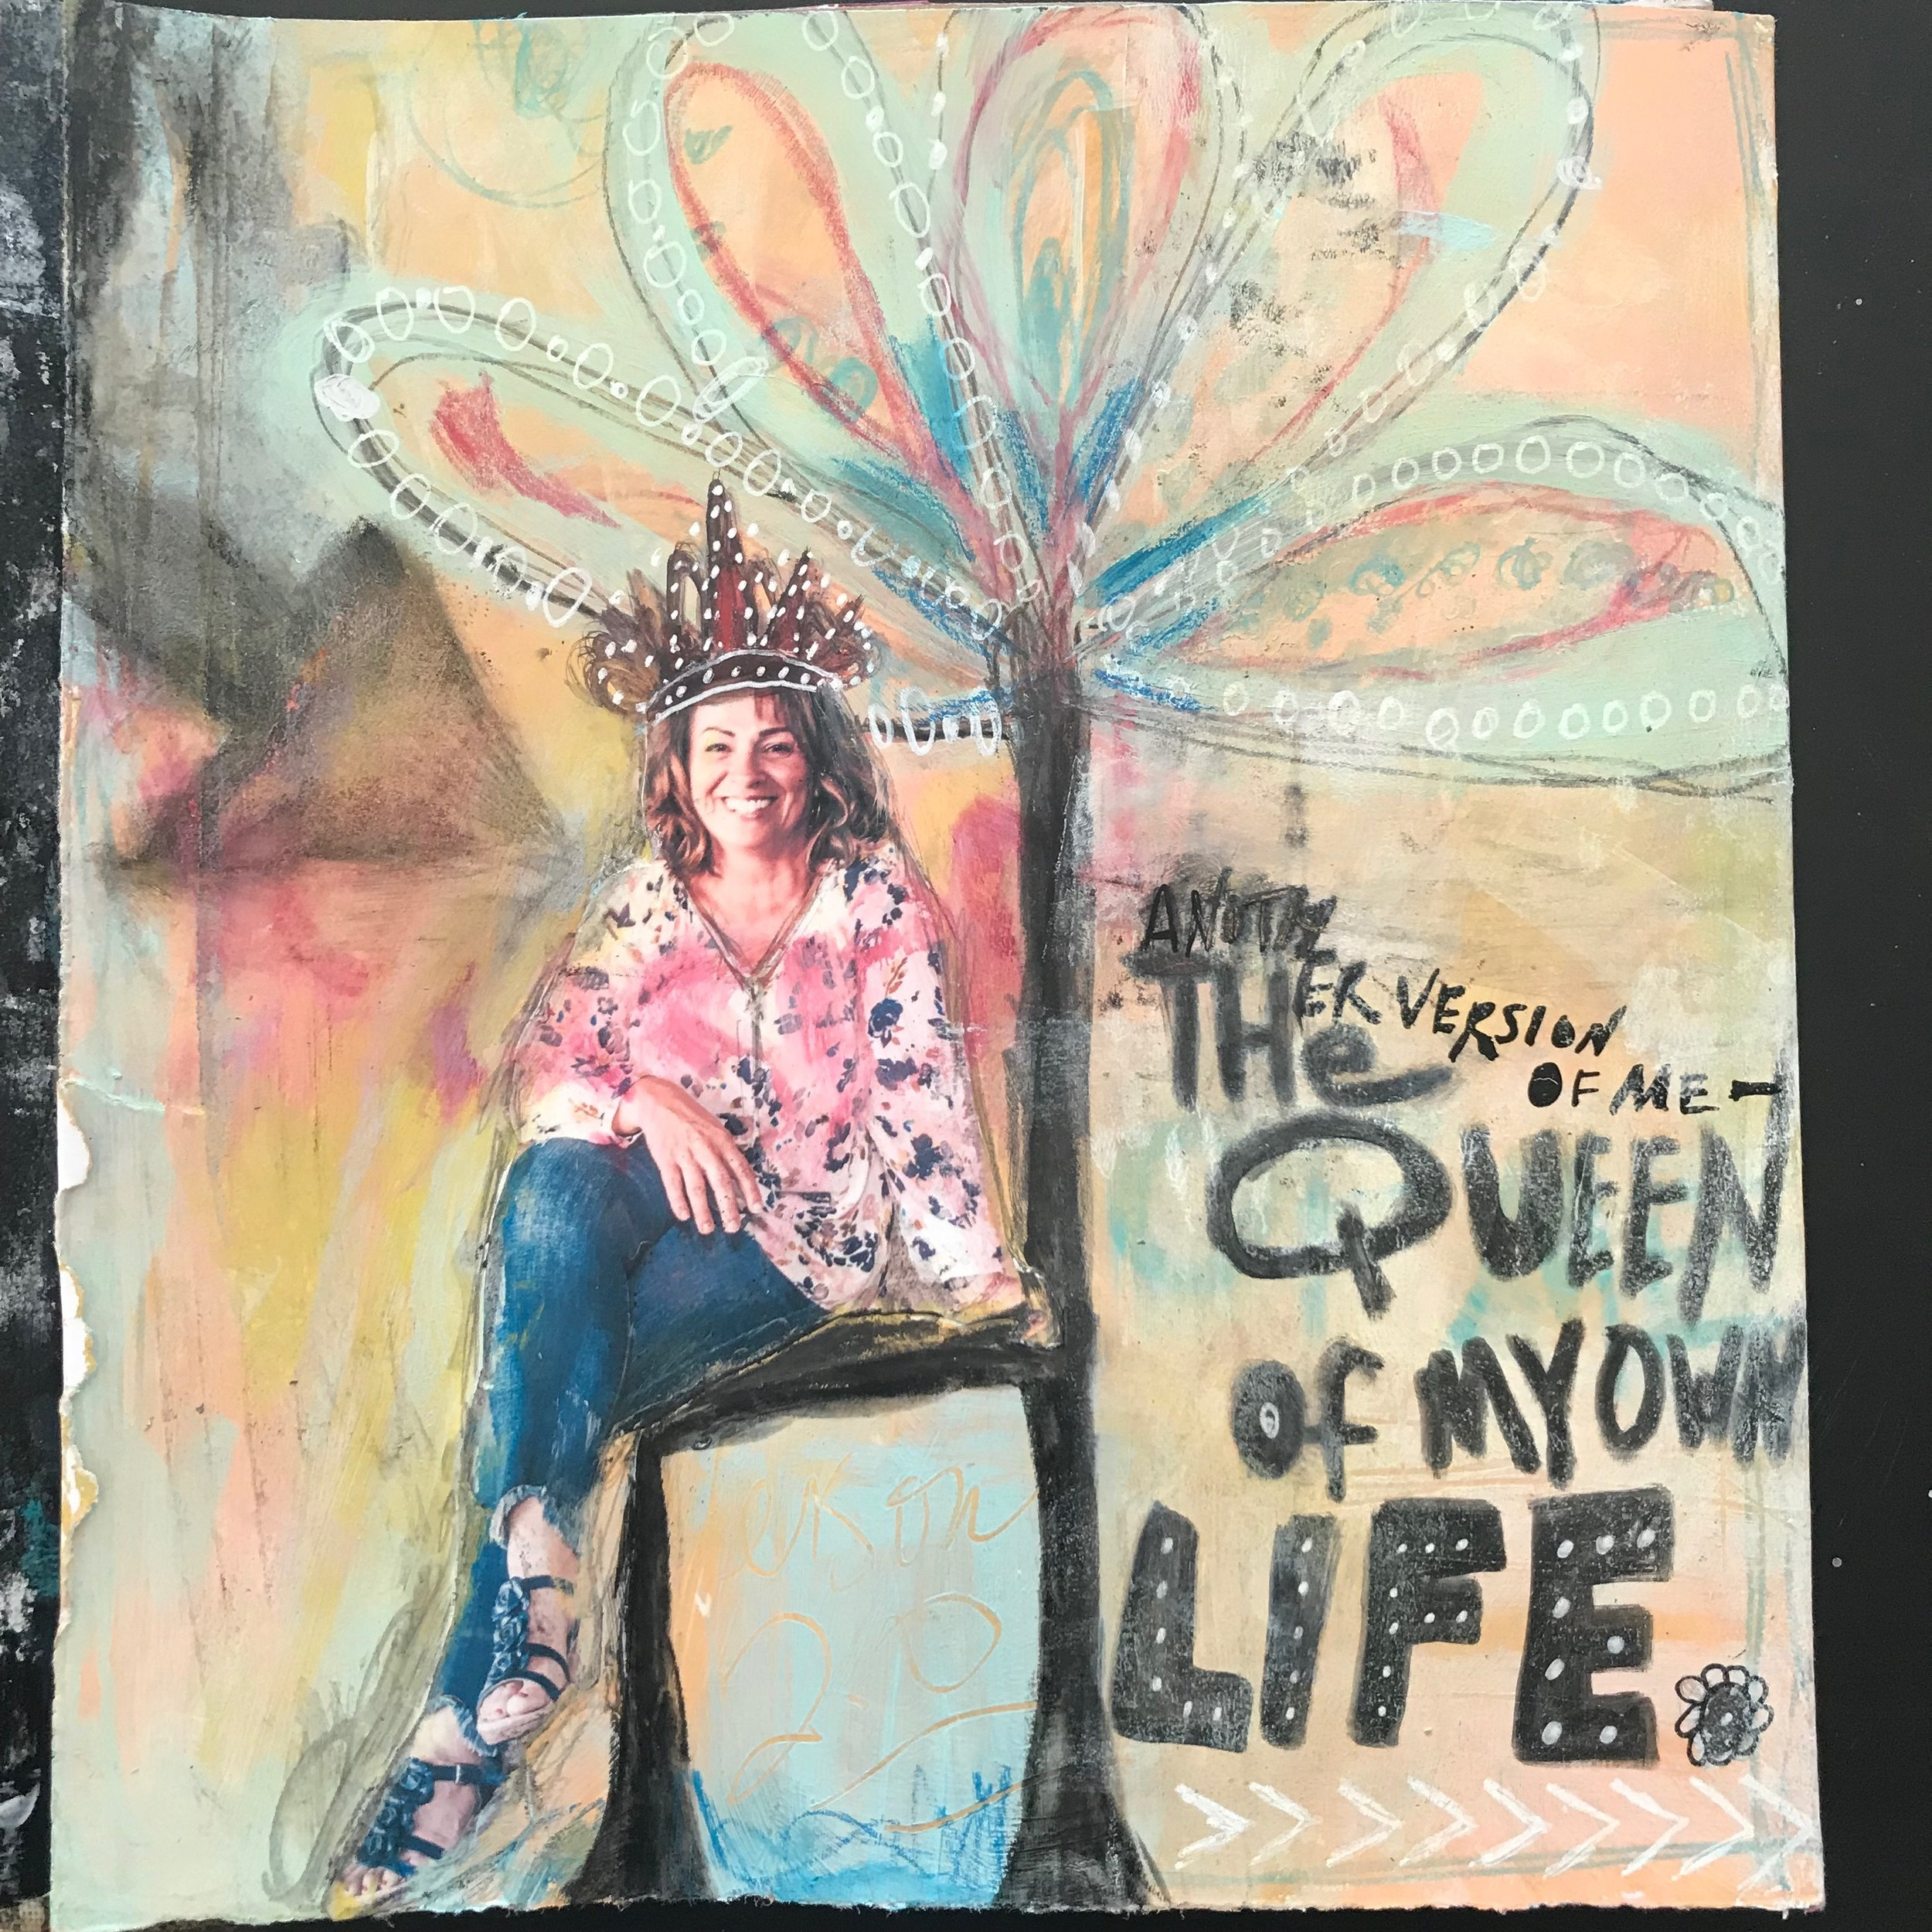 art journal project - another version of me - the Queen of my own life. art project at www.createspcestudio.com